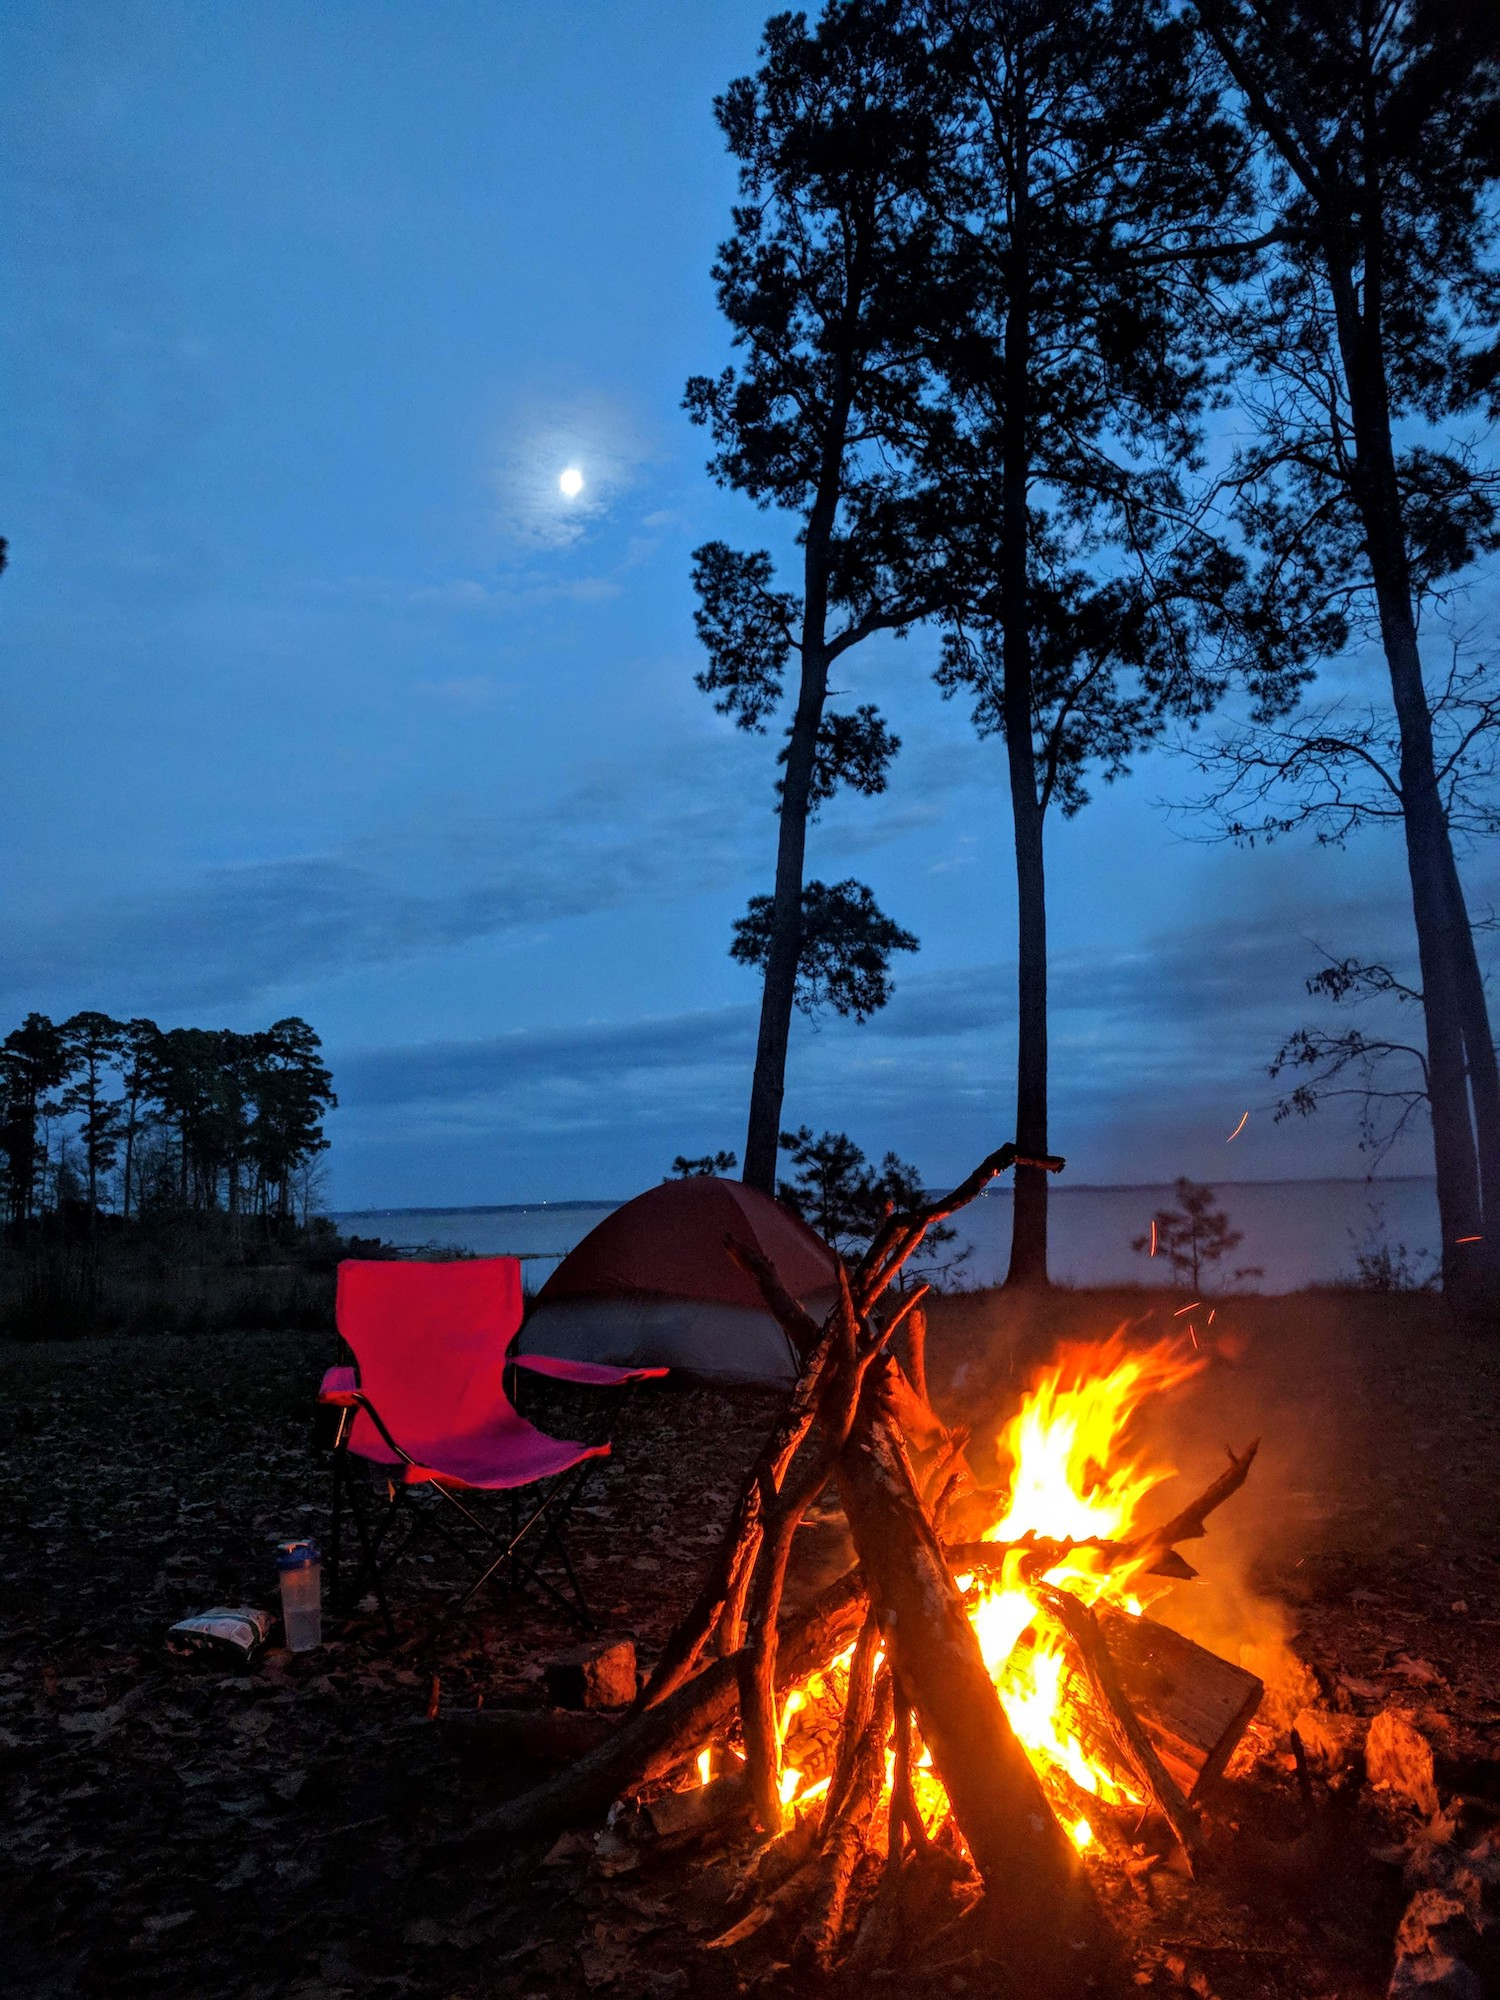 A full moon and a full campfire